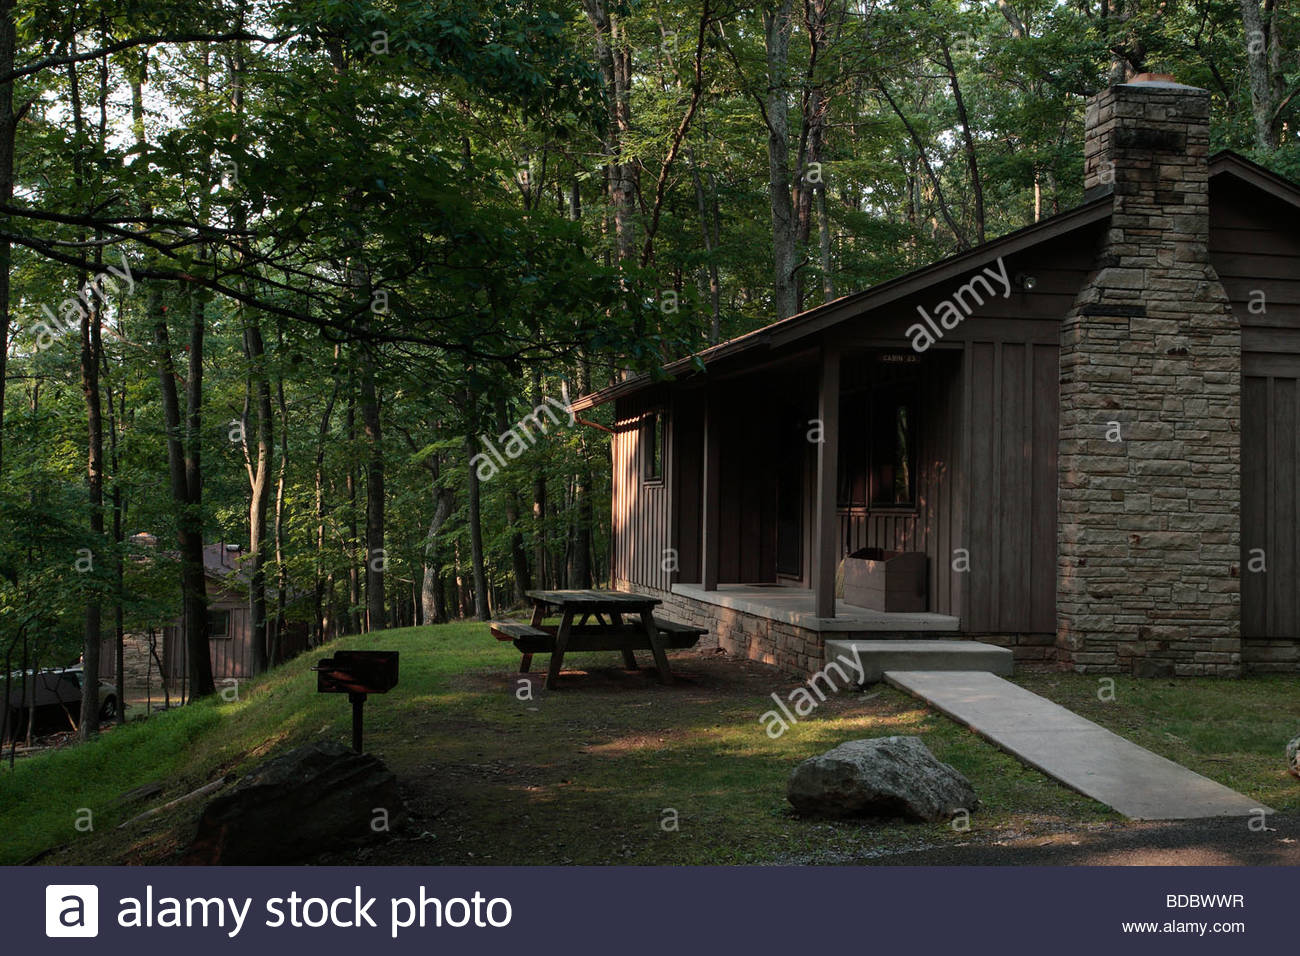 and virginia vacation gorge cvb wolf hill west wv cabins expeditions broadway creek cabin dsc stay avenue oak new rentals at river